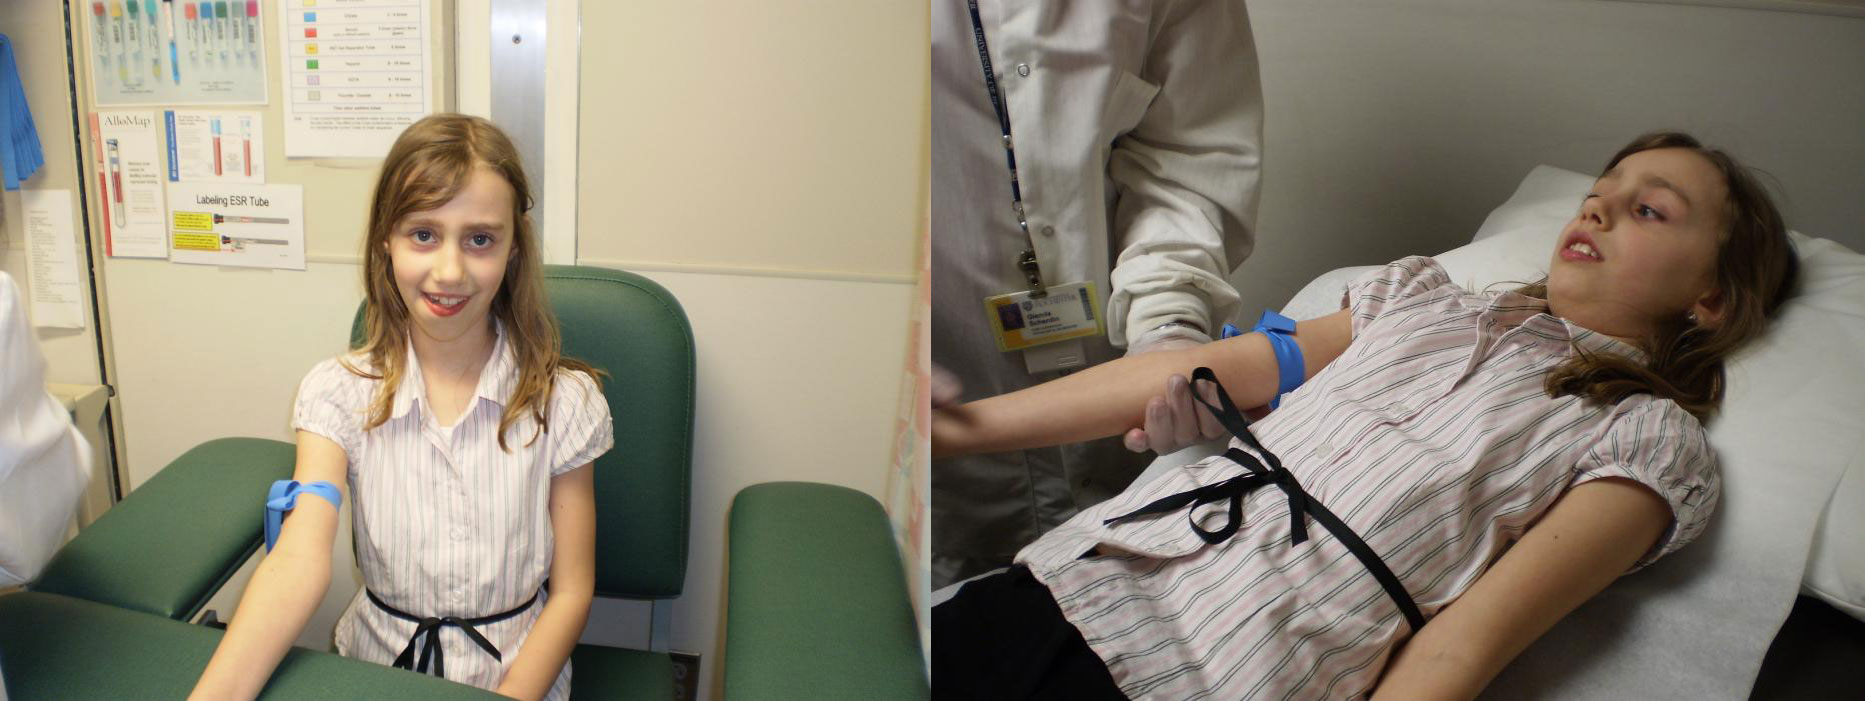 Tourniquet squeezing a patient's arm